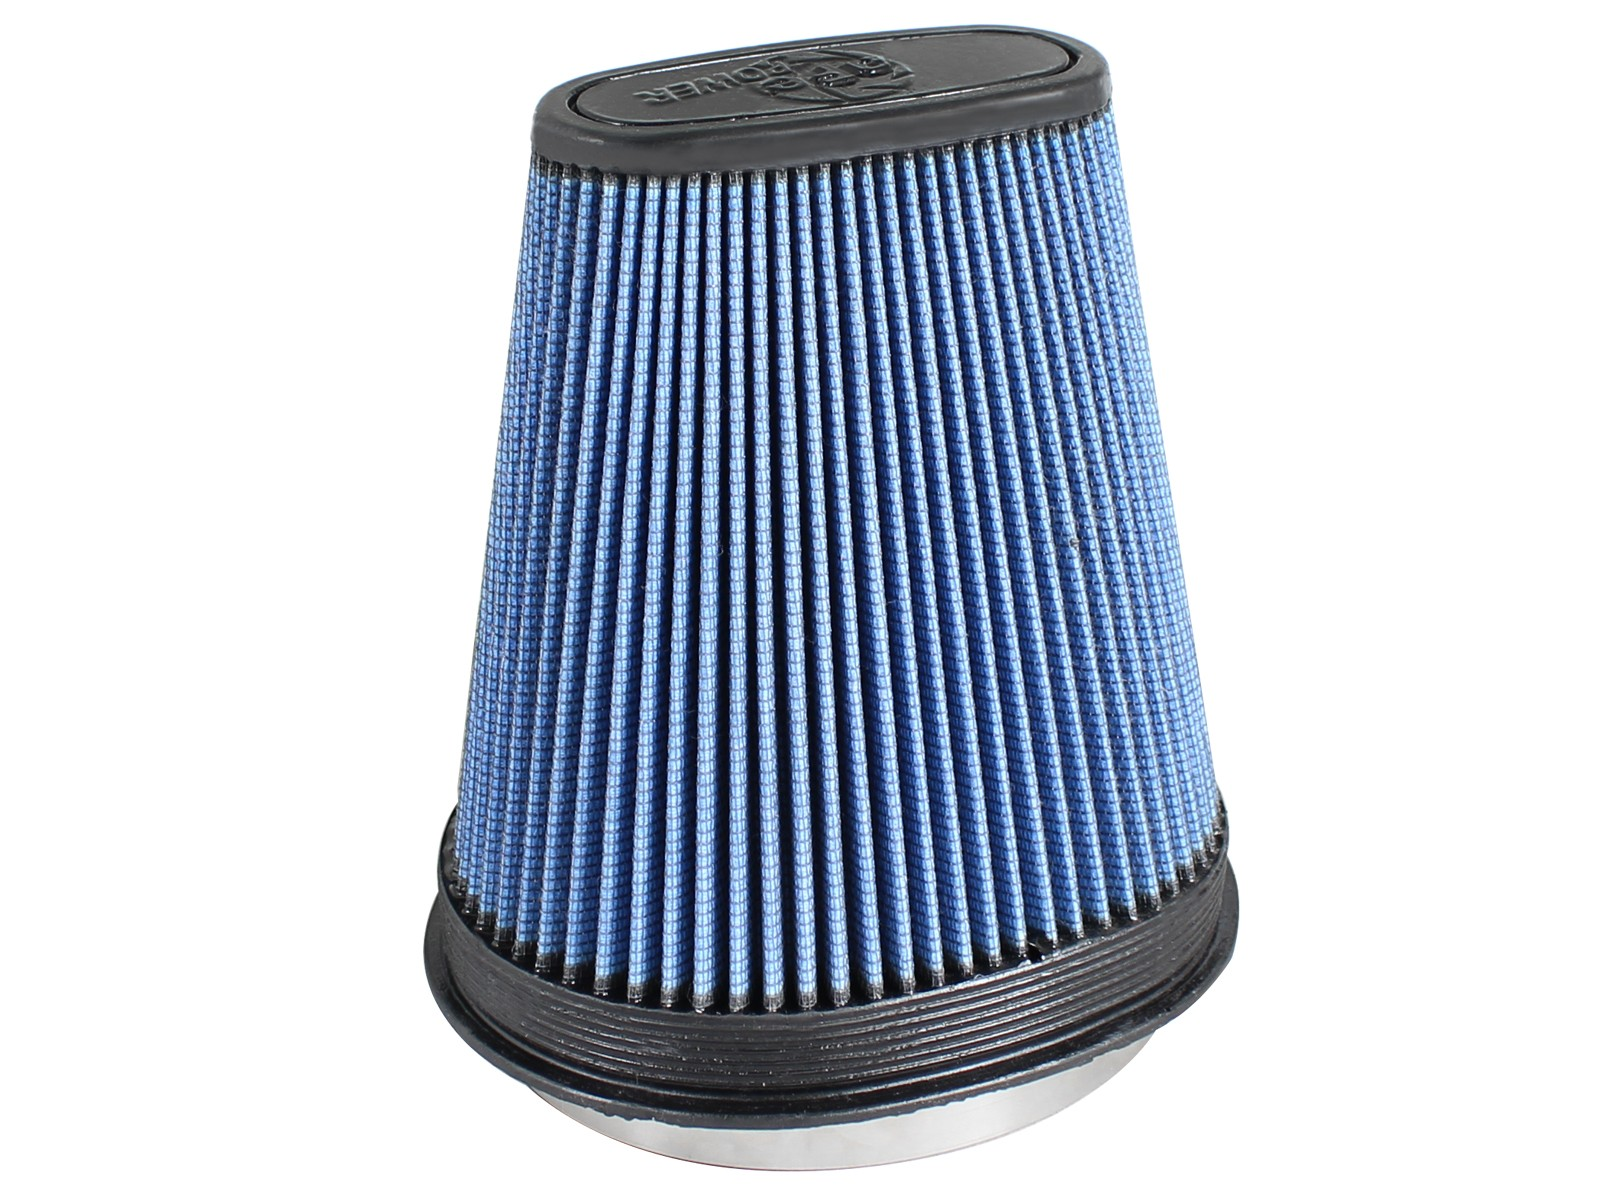 aFe POWER 24-90080 Magnum FLOW Pro 5R Air Filter